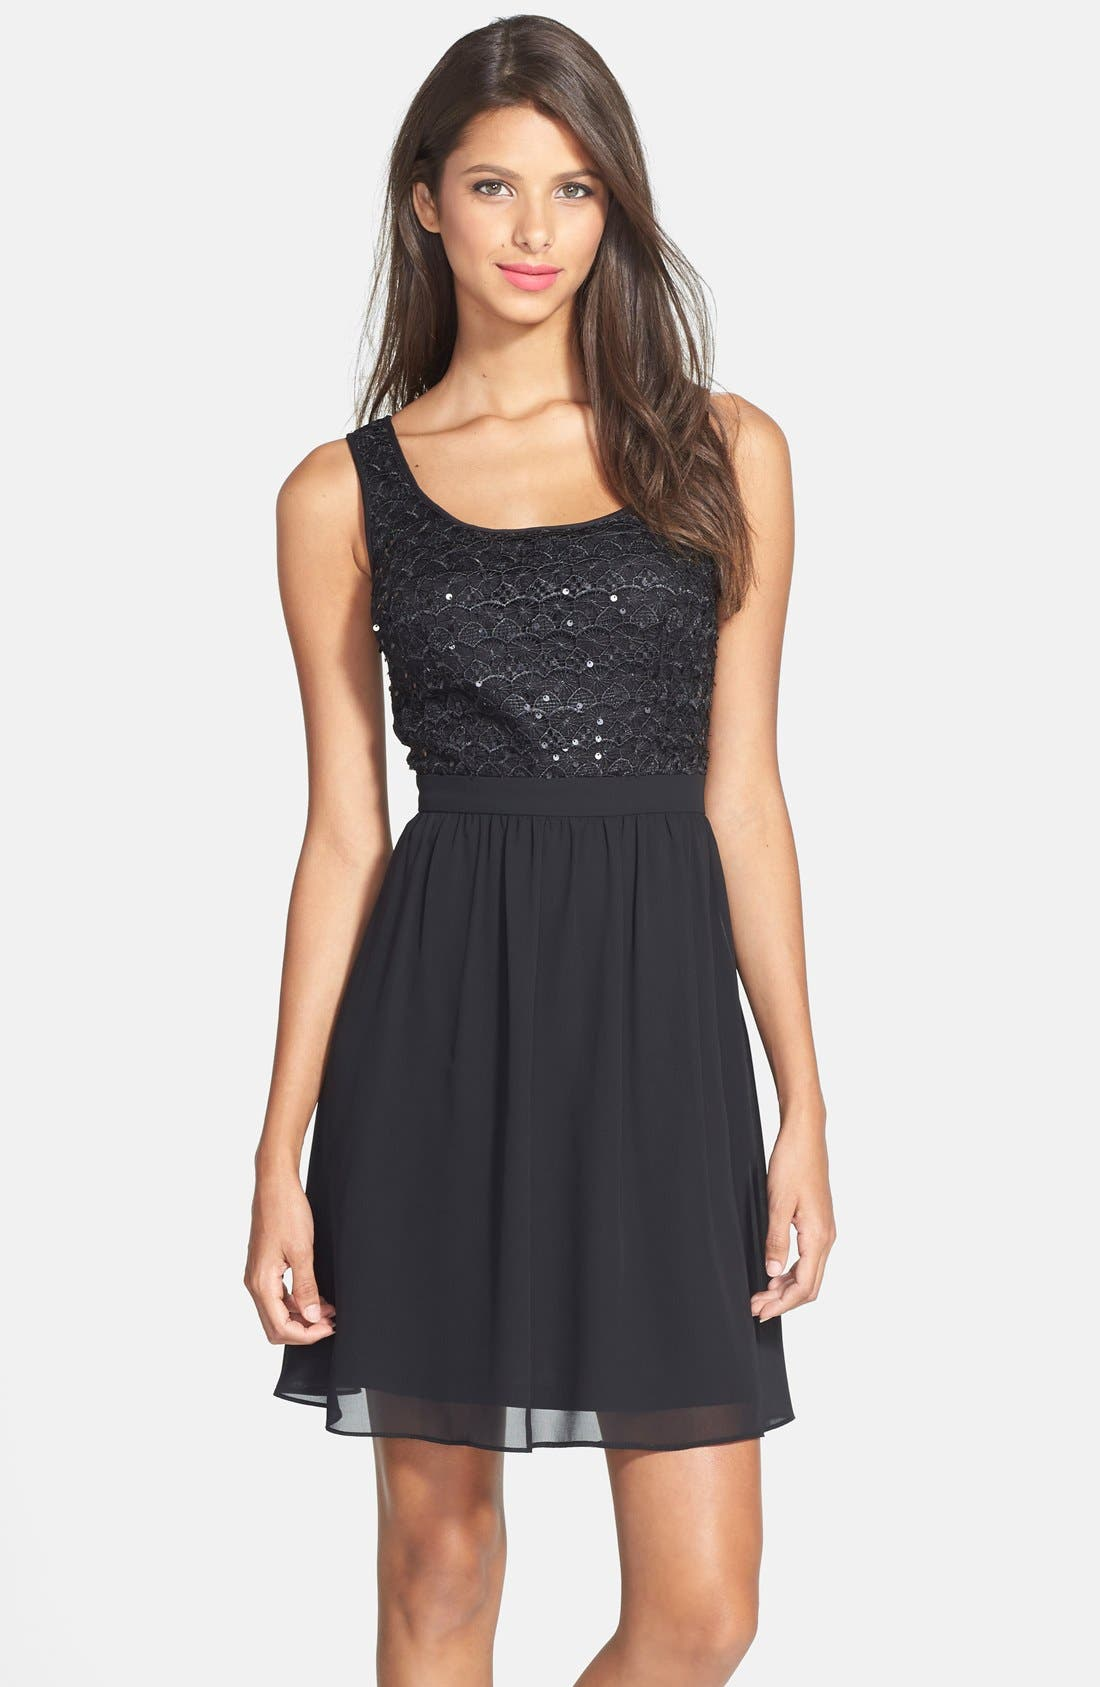 Alternate Image 1 Selected - Hailey by Adrianna Papell Sequin Lace Illusion Fit & Flare Dress